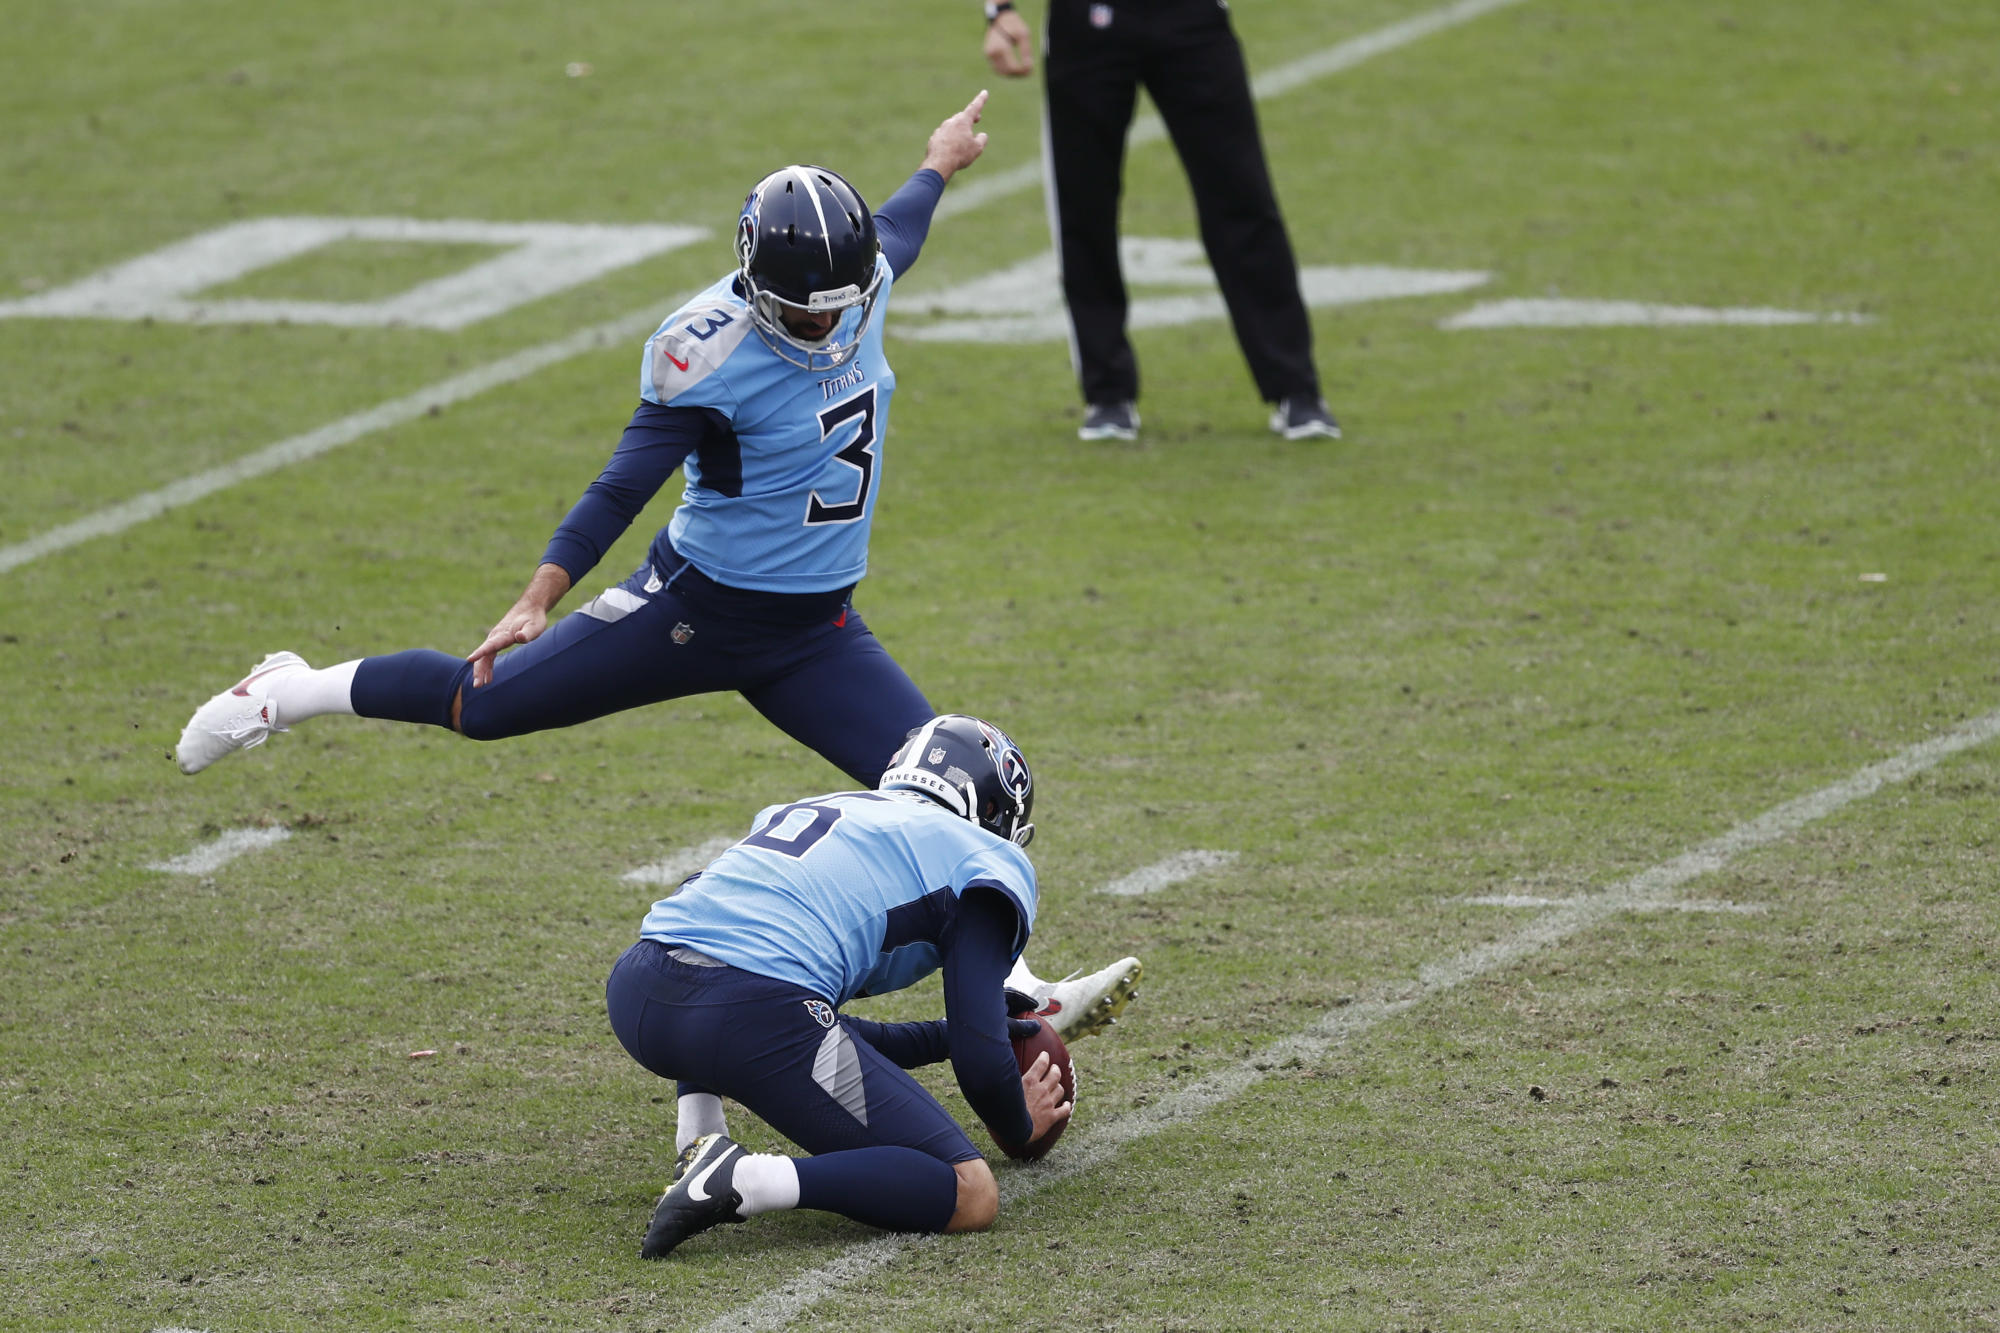 Titans will be without 3-time Pro Bowl punter Brett Kern